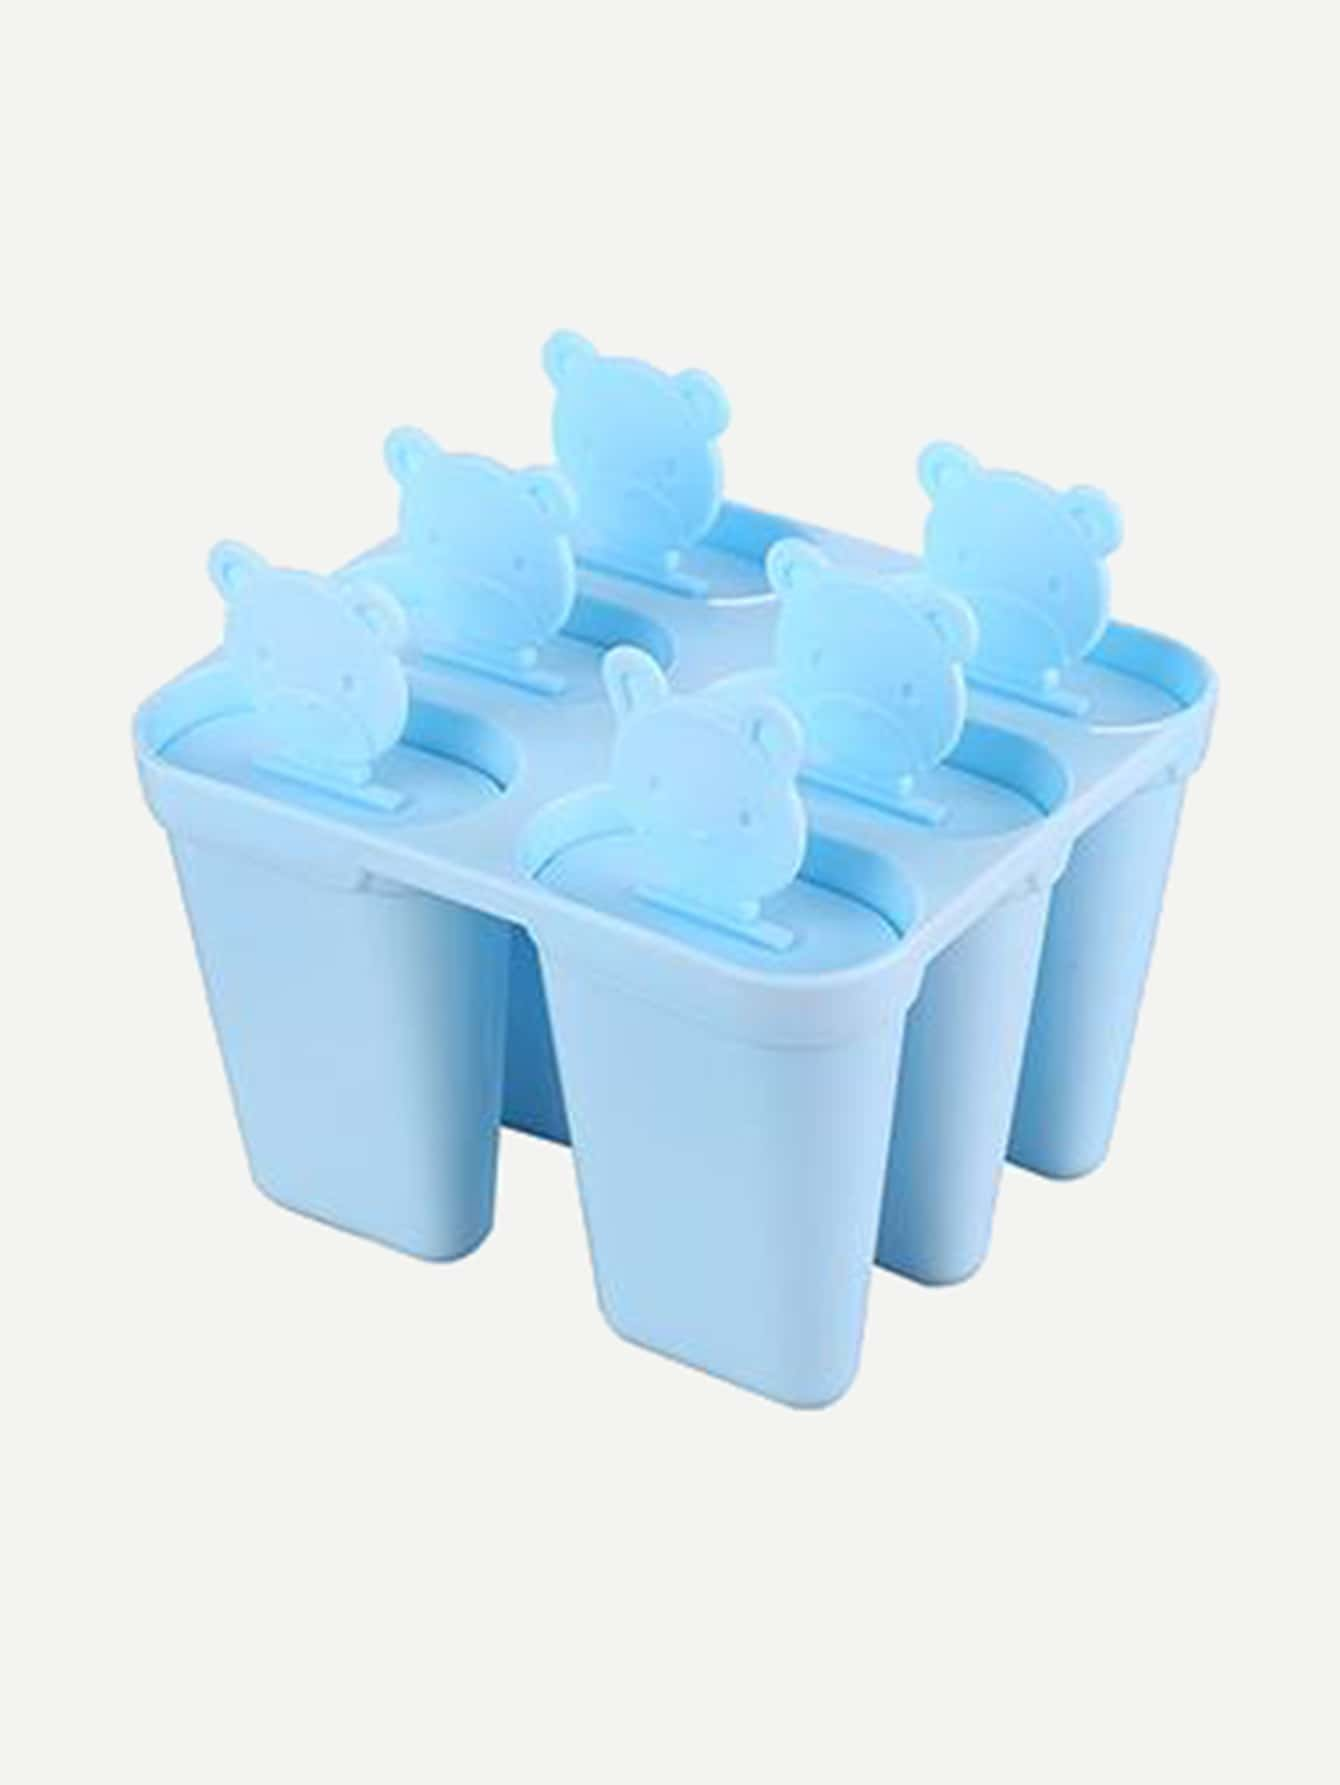 6 Compartment Popsicle Ice Mold With Stick diy plastic popsicle mold set white